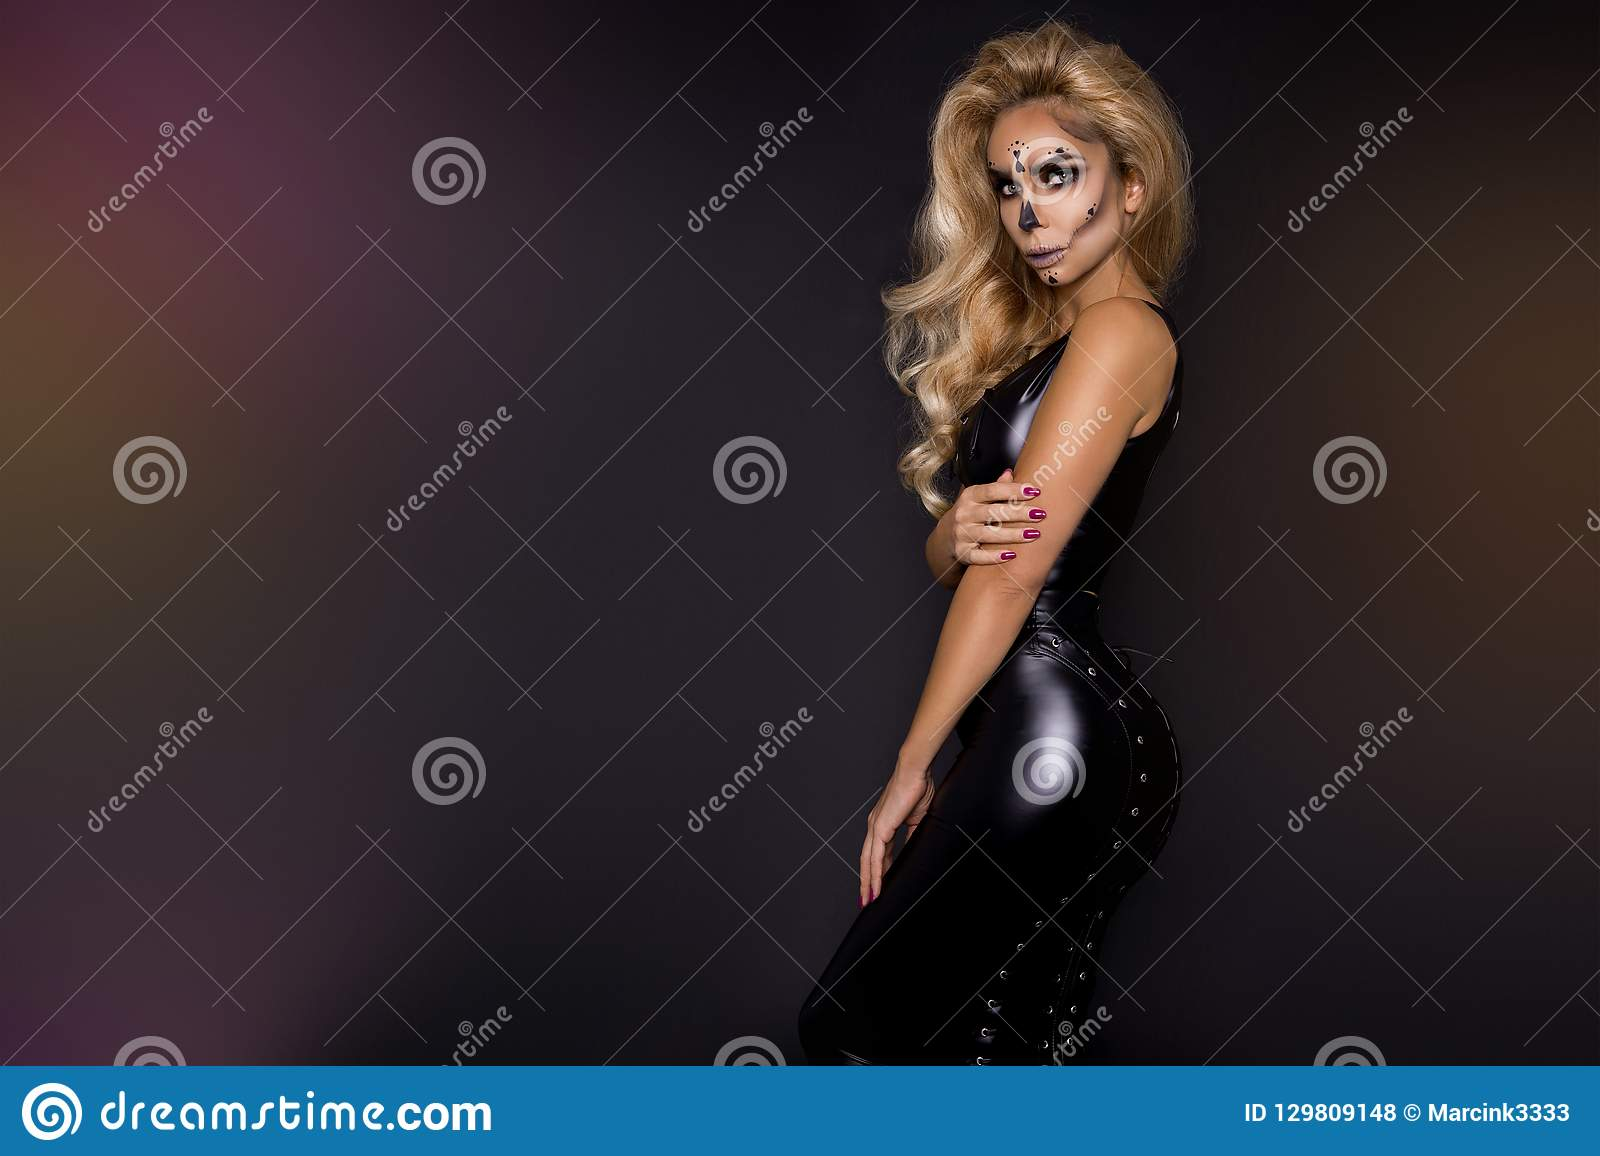 Blonde woman in Halloween makeup and leather outfit on a black background in the studio. Skeleton, monster and witch.